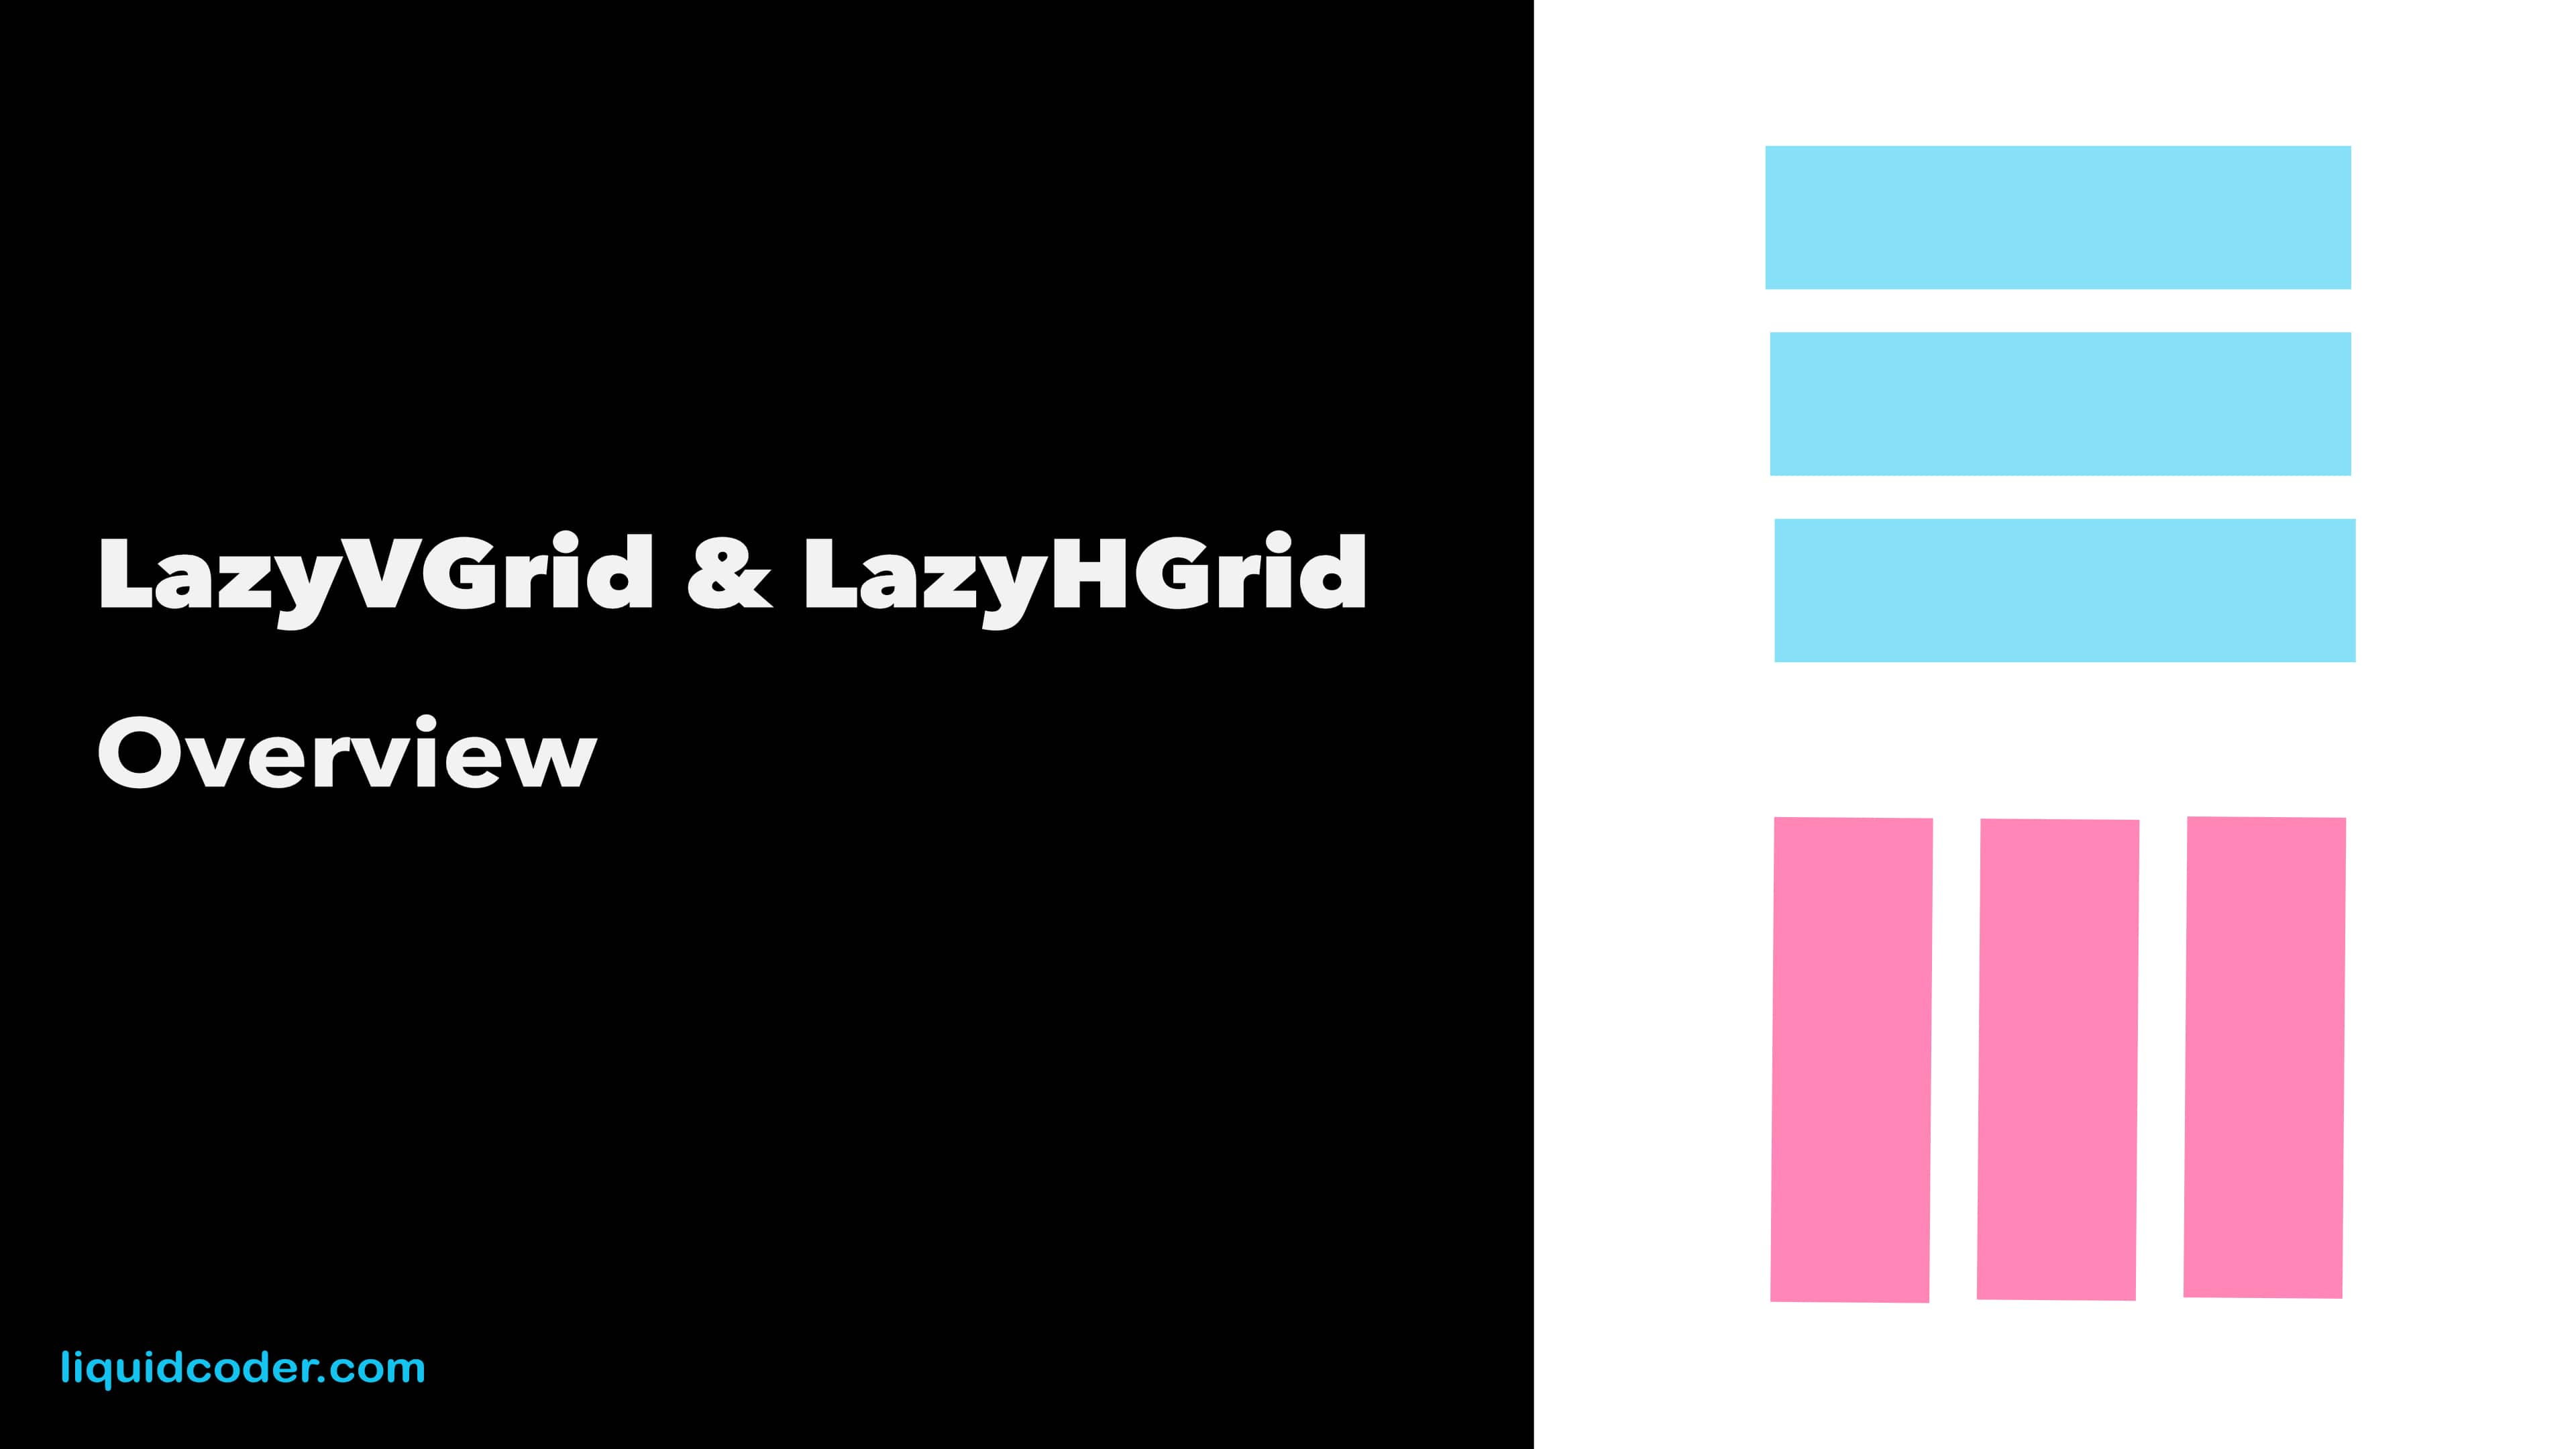 LazyVGrid & LazyHGrid Overview